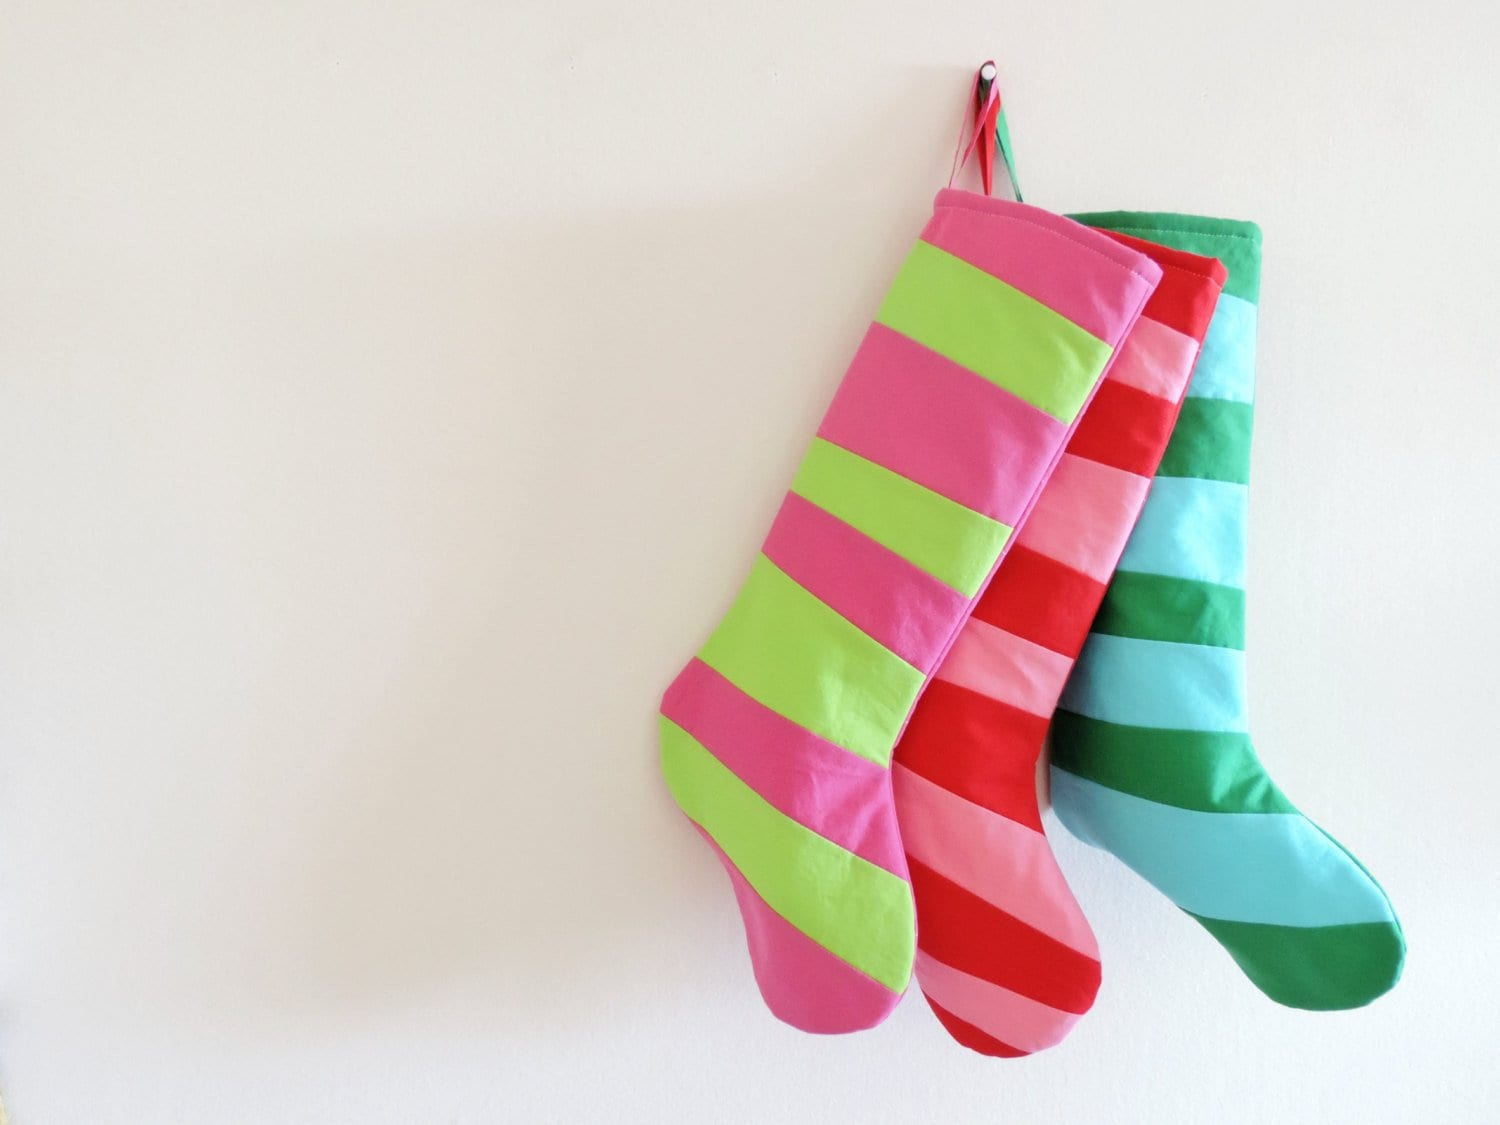 personalized christmas stocking personalized stocking kids girls boys family stockings modern wonky striped stocking inspired by dr seuss